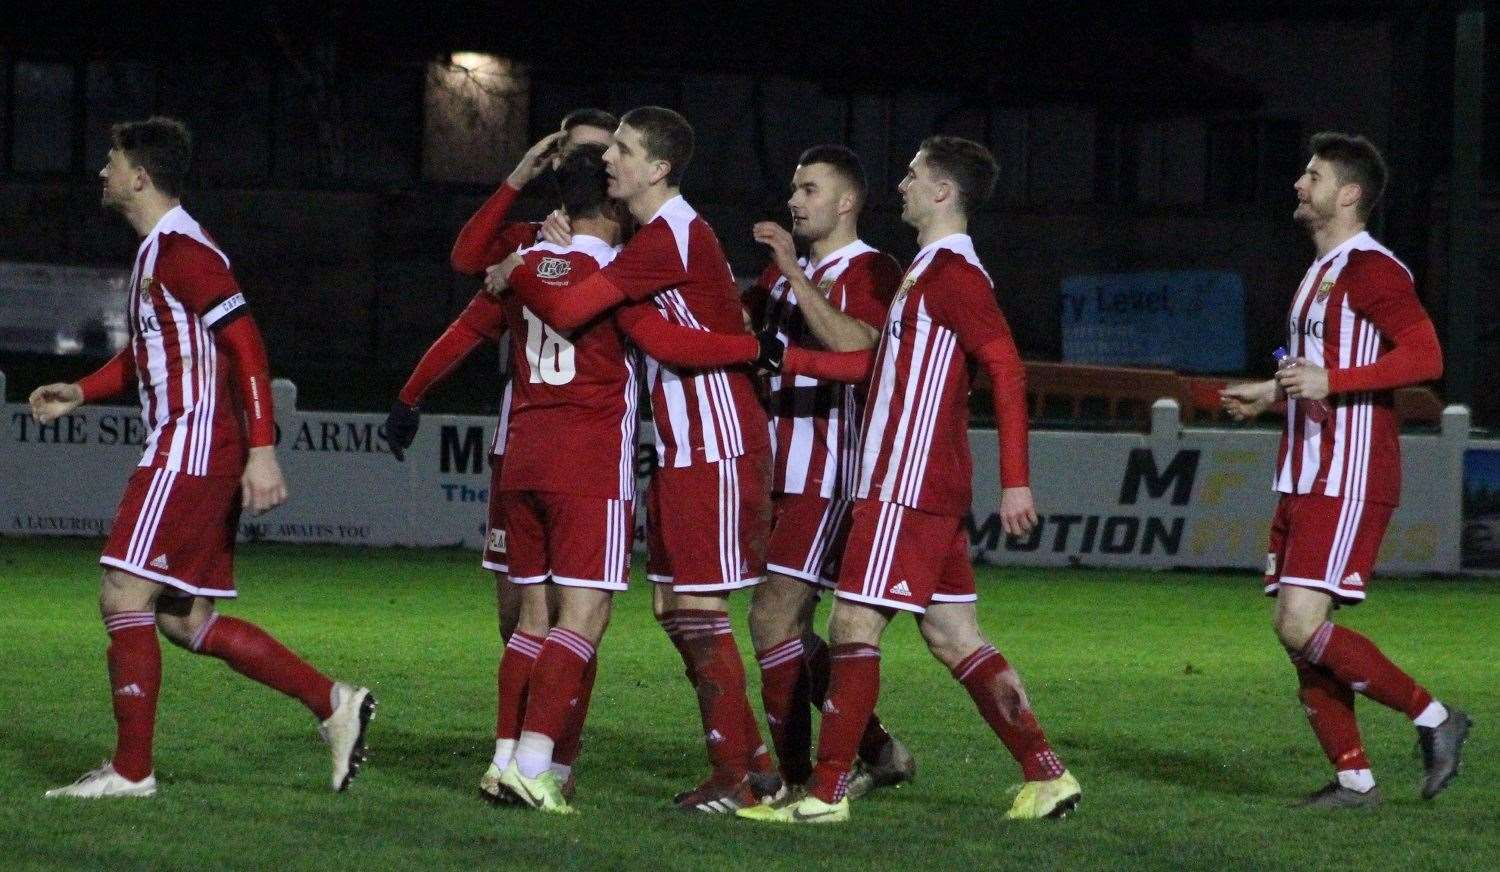 Formartine players celebrate following their shootout win. Picture: Ian Rennie